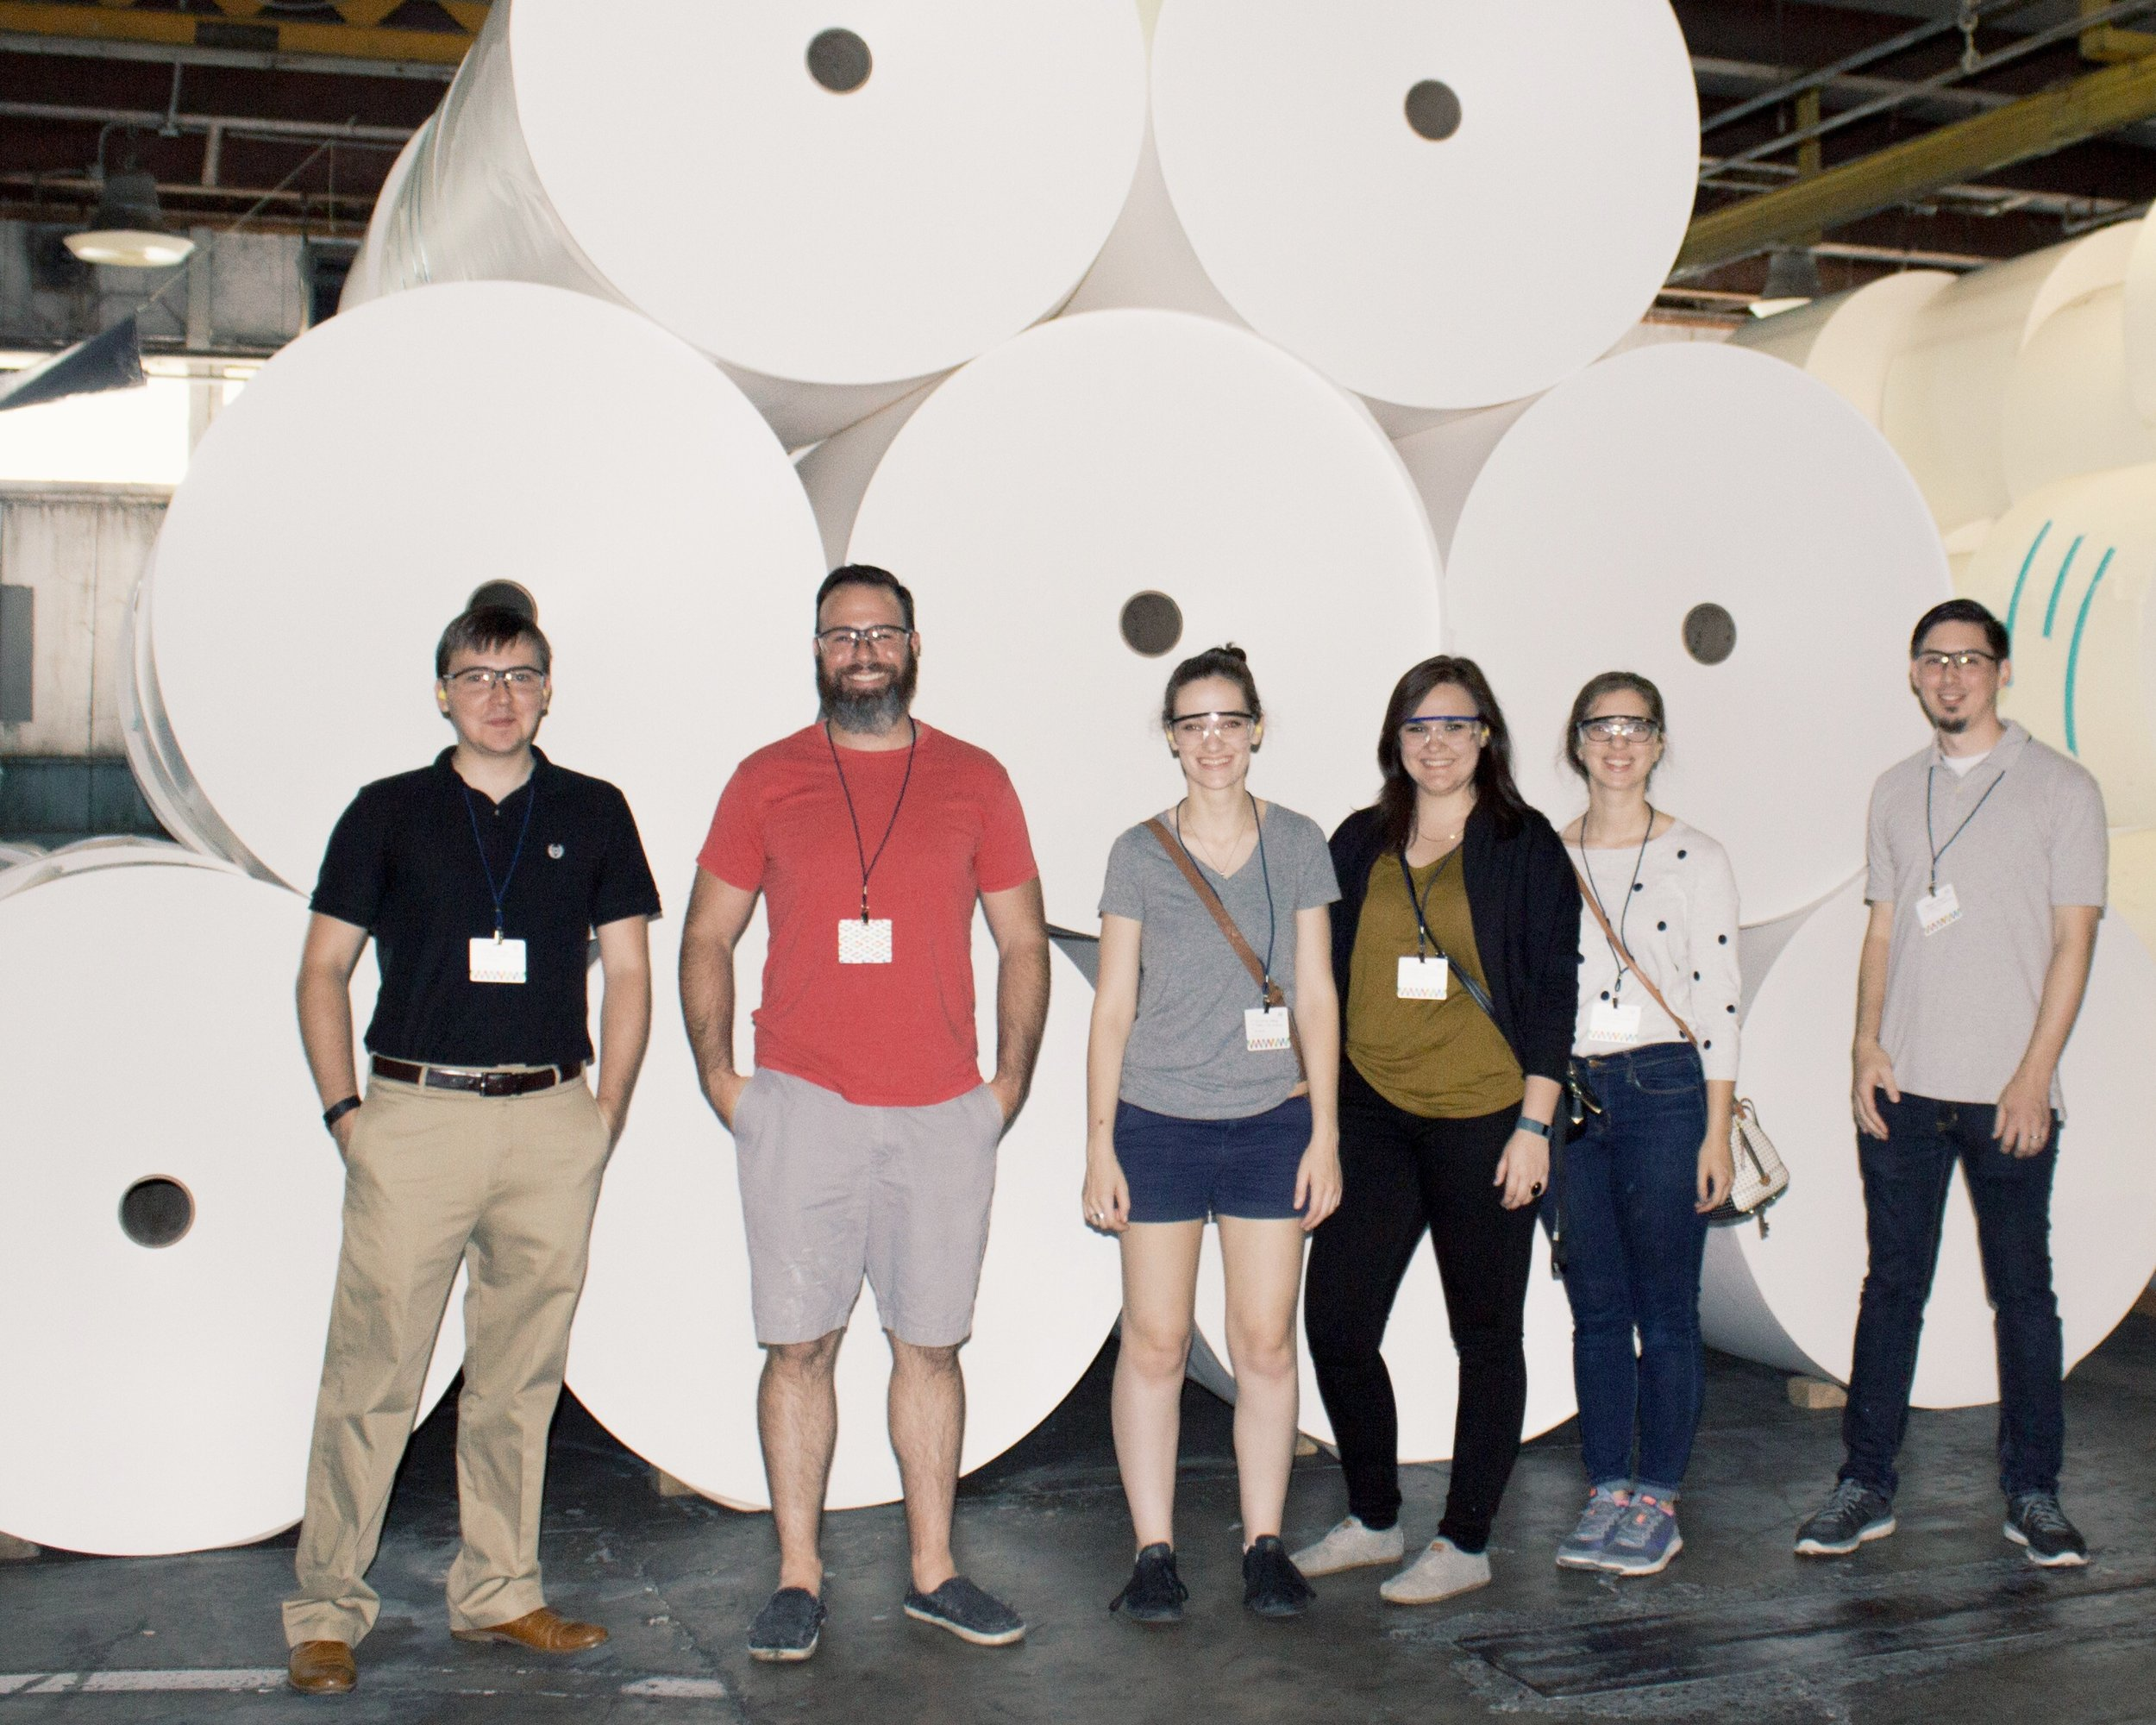 Our tour group in front of the huge rolls of the finest Mohawk paper. Photo taken by Ariel Smullen.